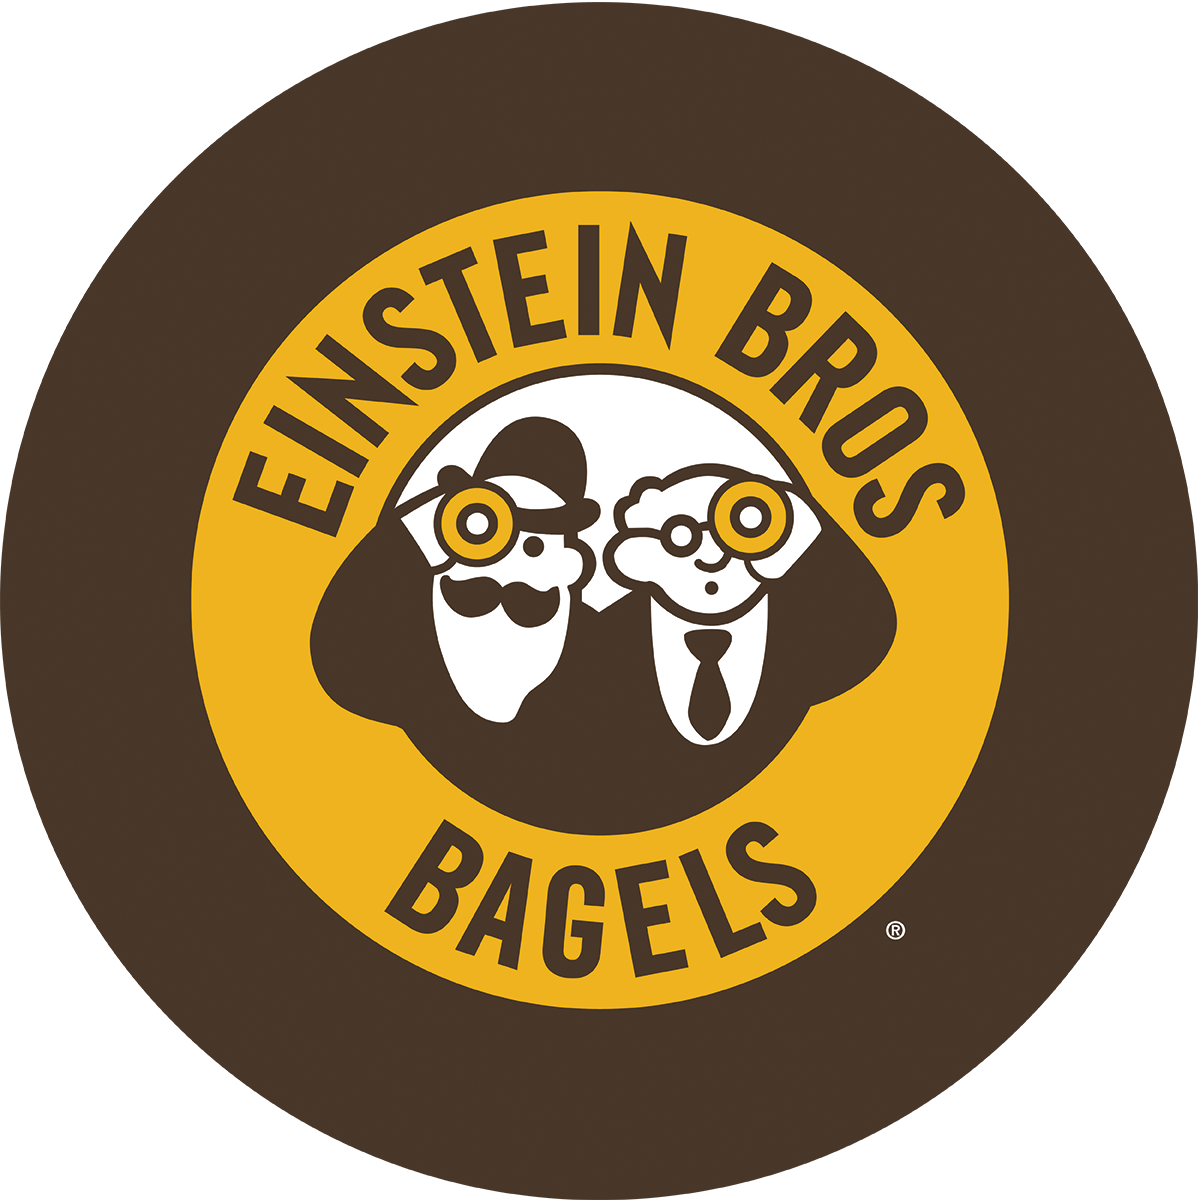 Einstein Bros. Bagels - Fairfield, CT - Restaurants